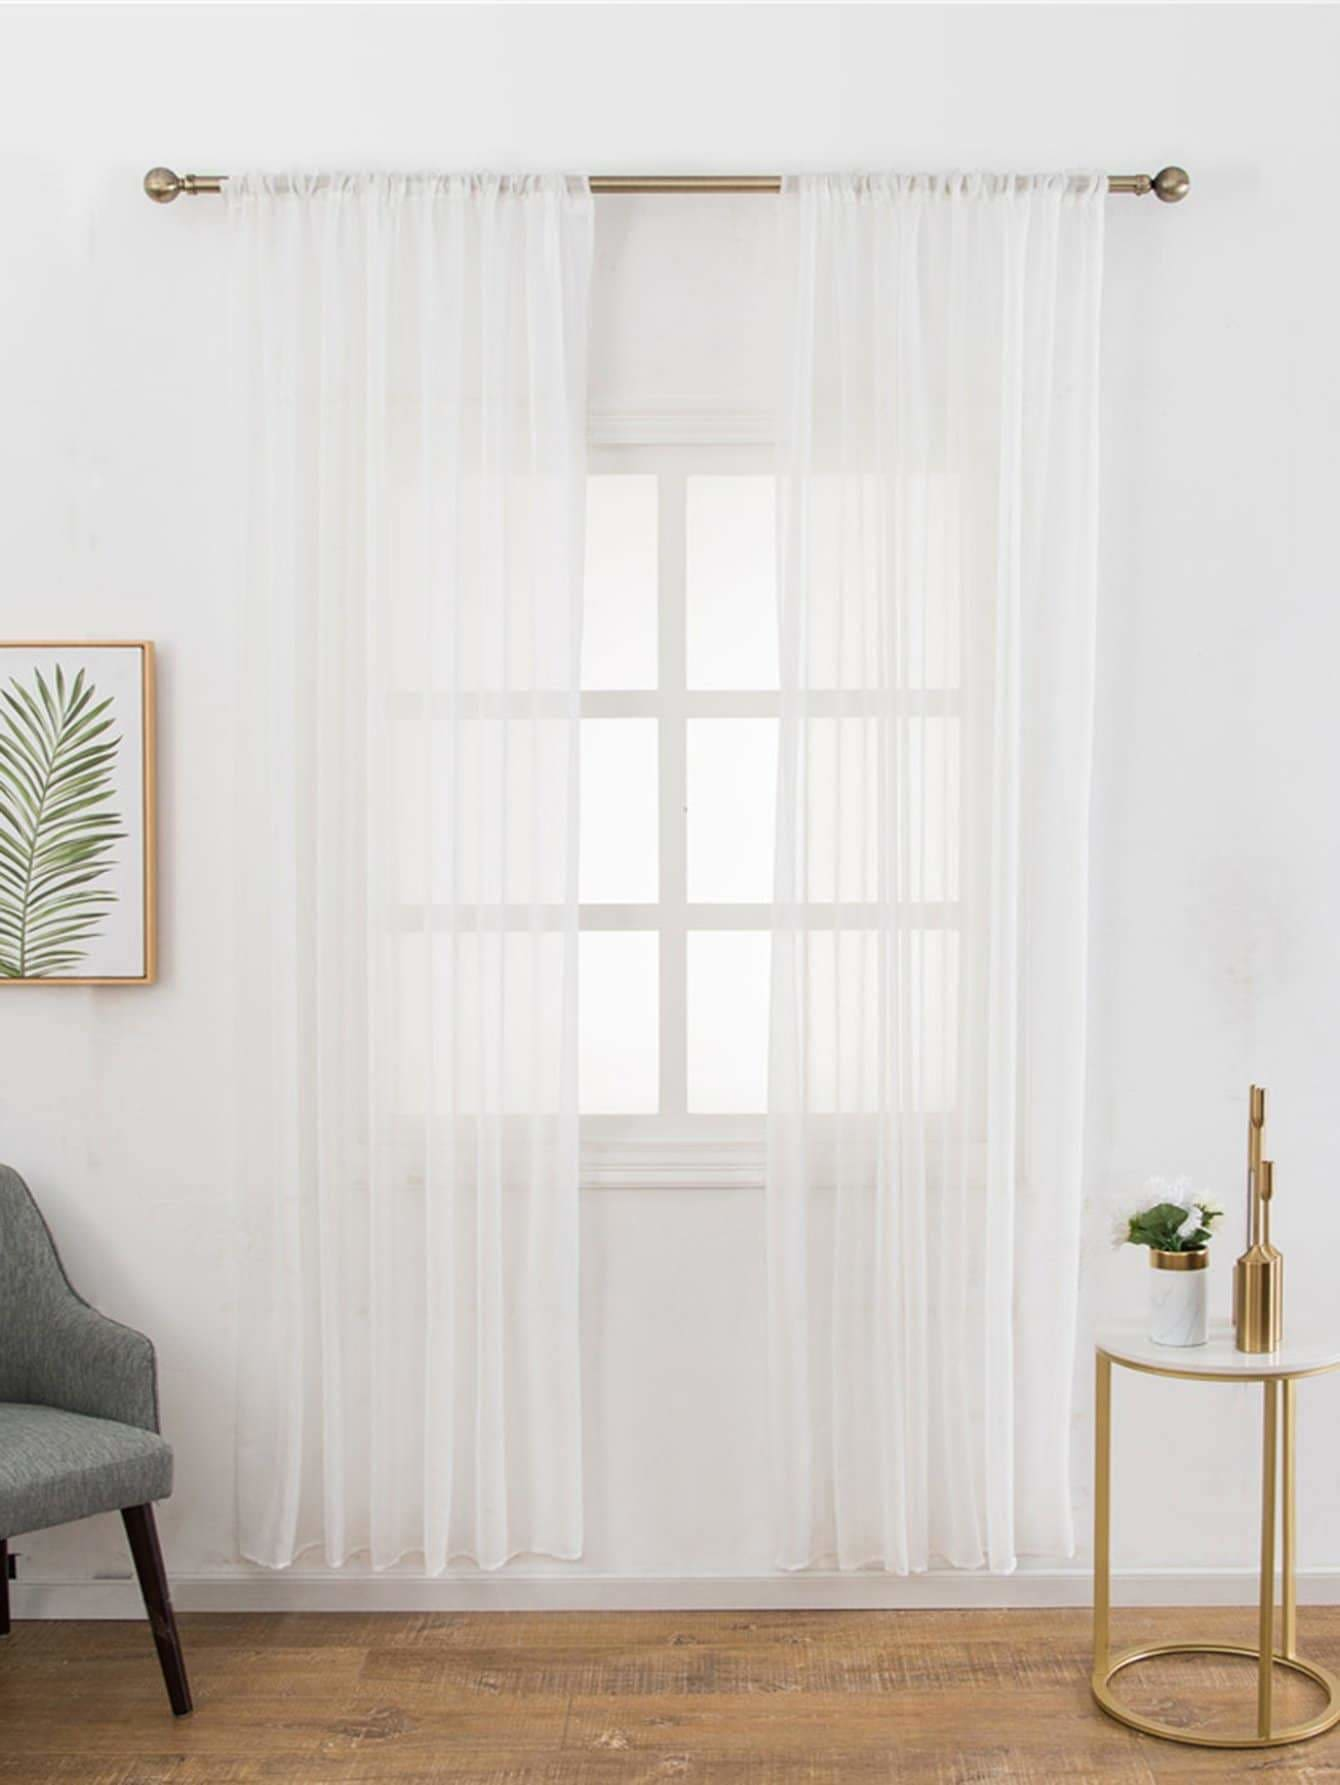 Mesh Design Rod Pocket Sheer Curtain 1pc - Curtains